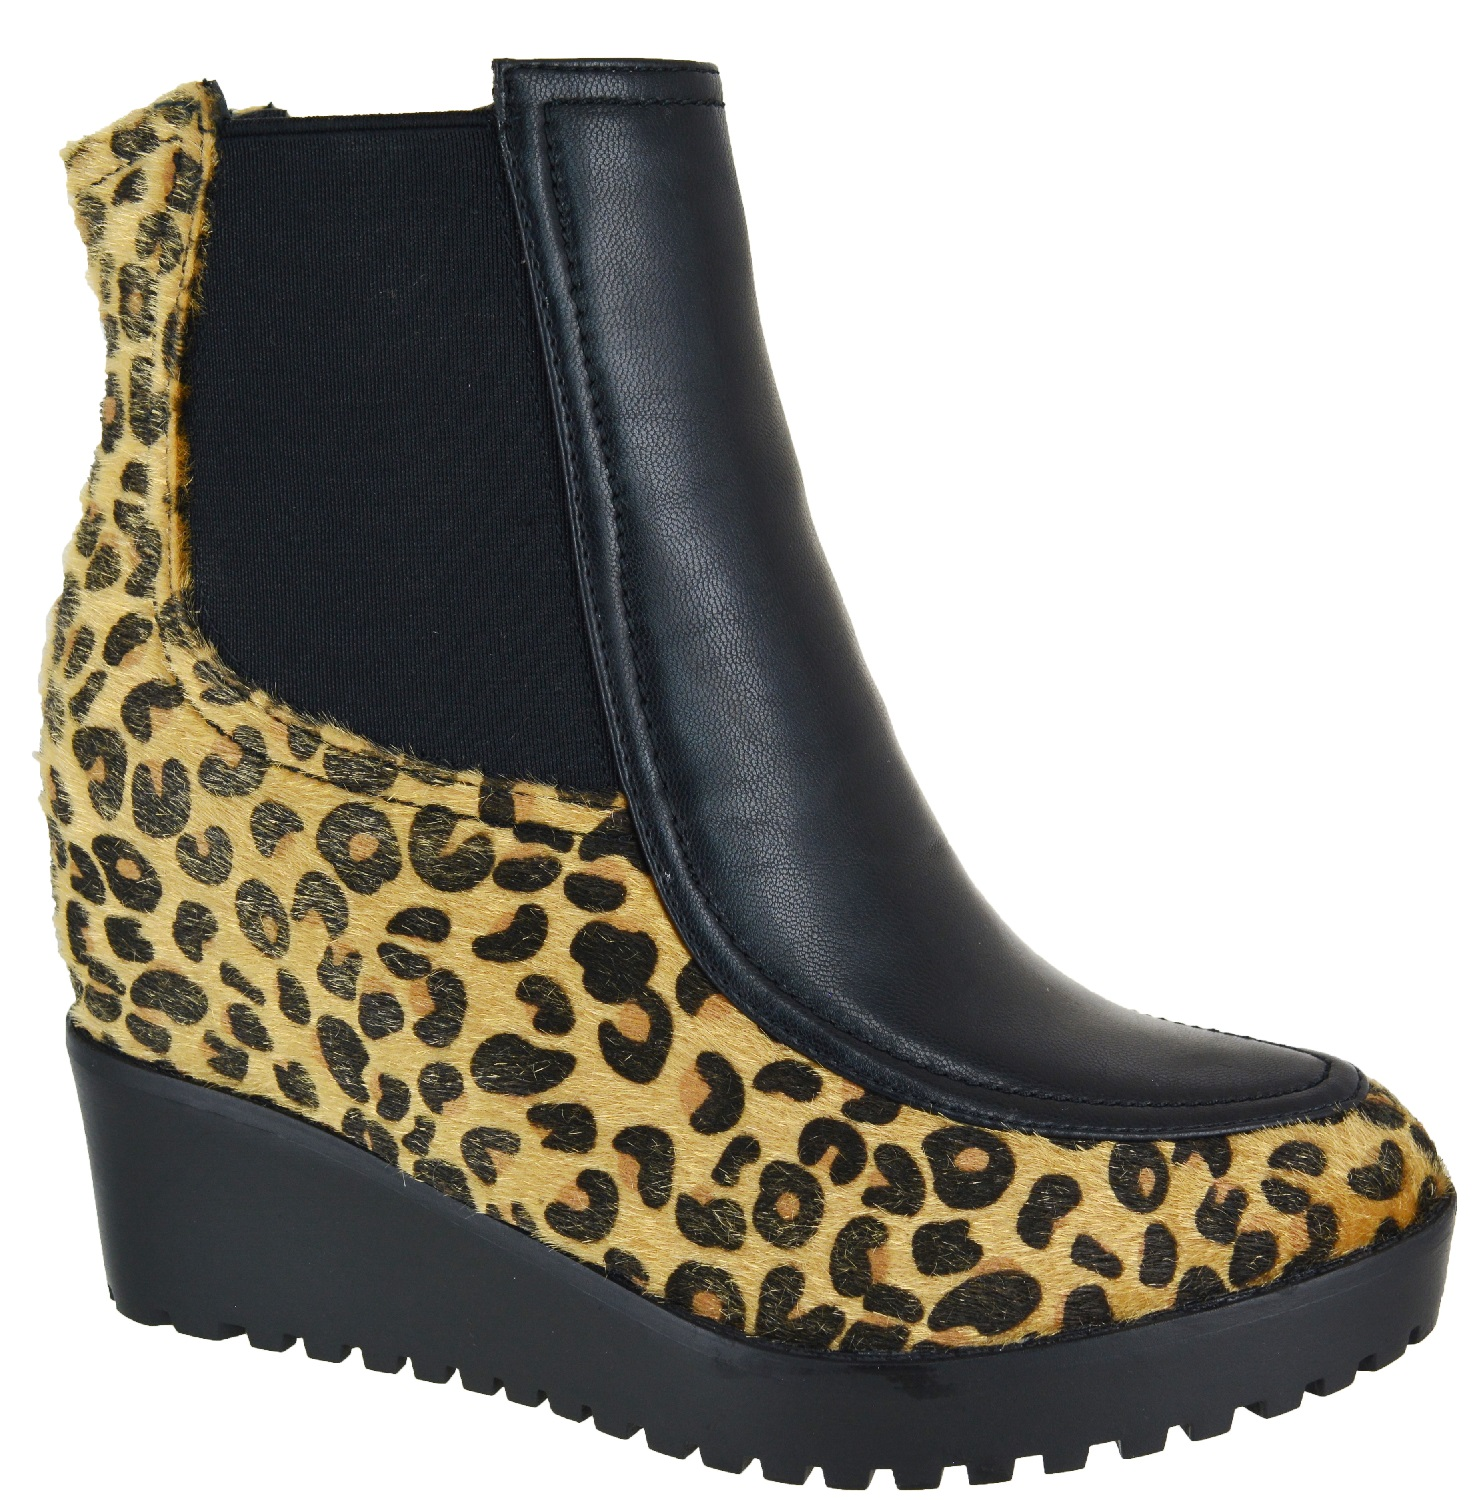 LADIES-WOMENS-BLACK-WARM-FUR-CALF-ANKLE-WEDGE-ZIP-UP-MID-HIGH-BOOTS-SIZES-3-8